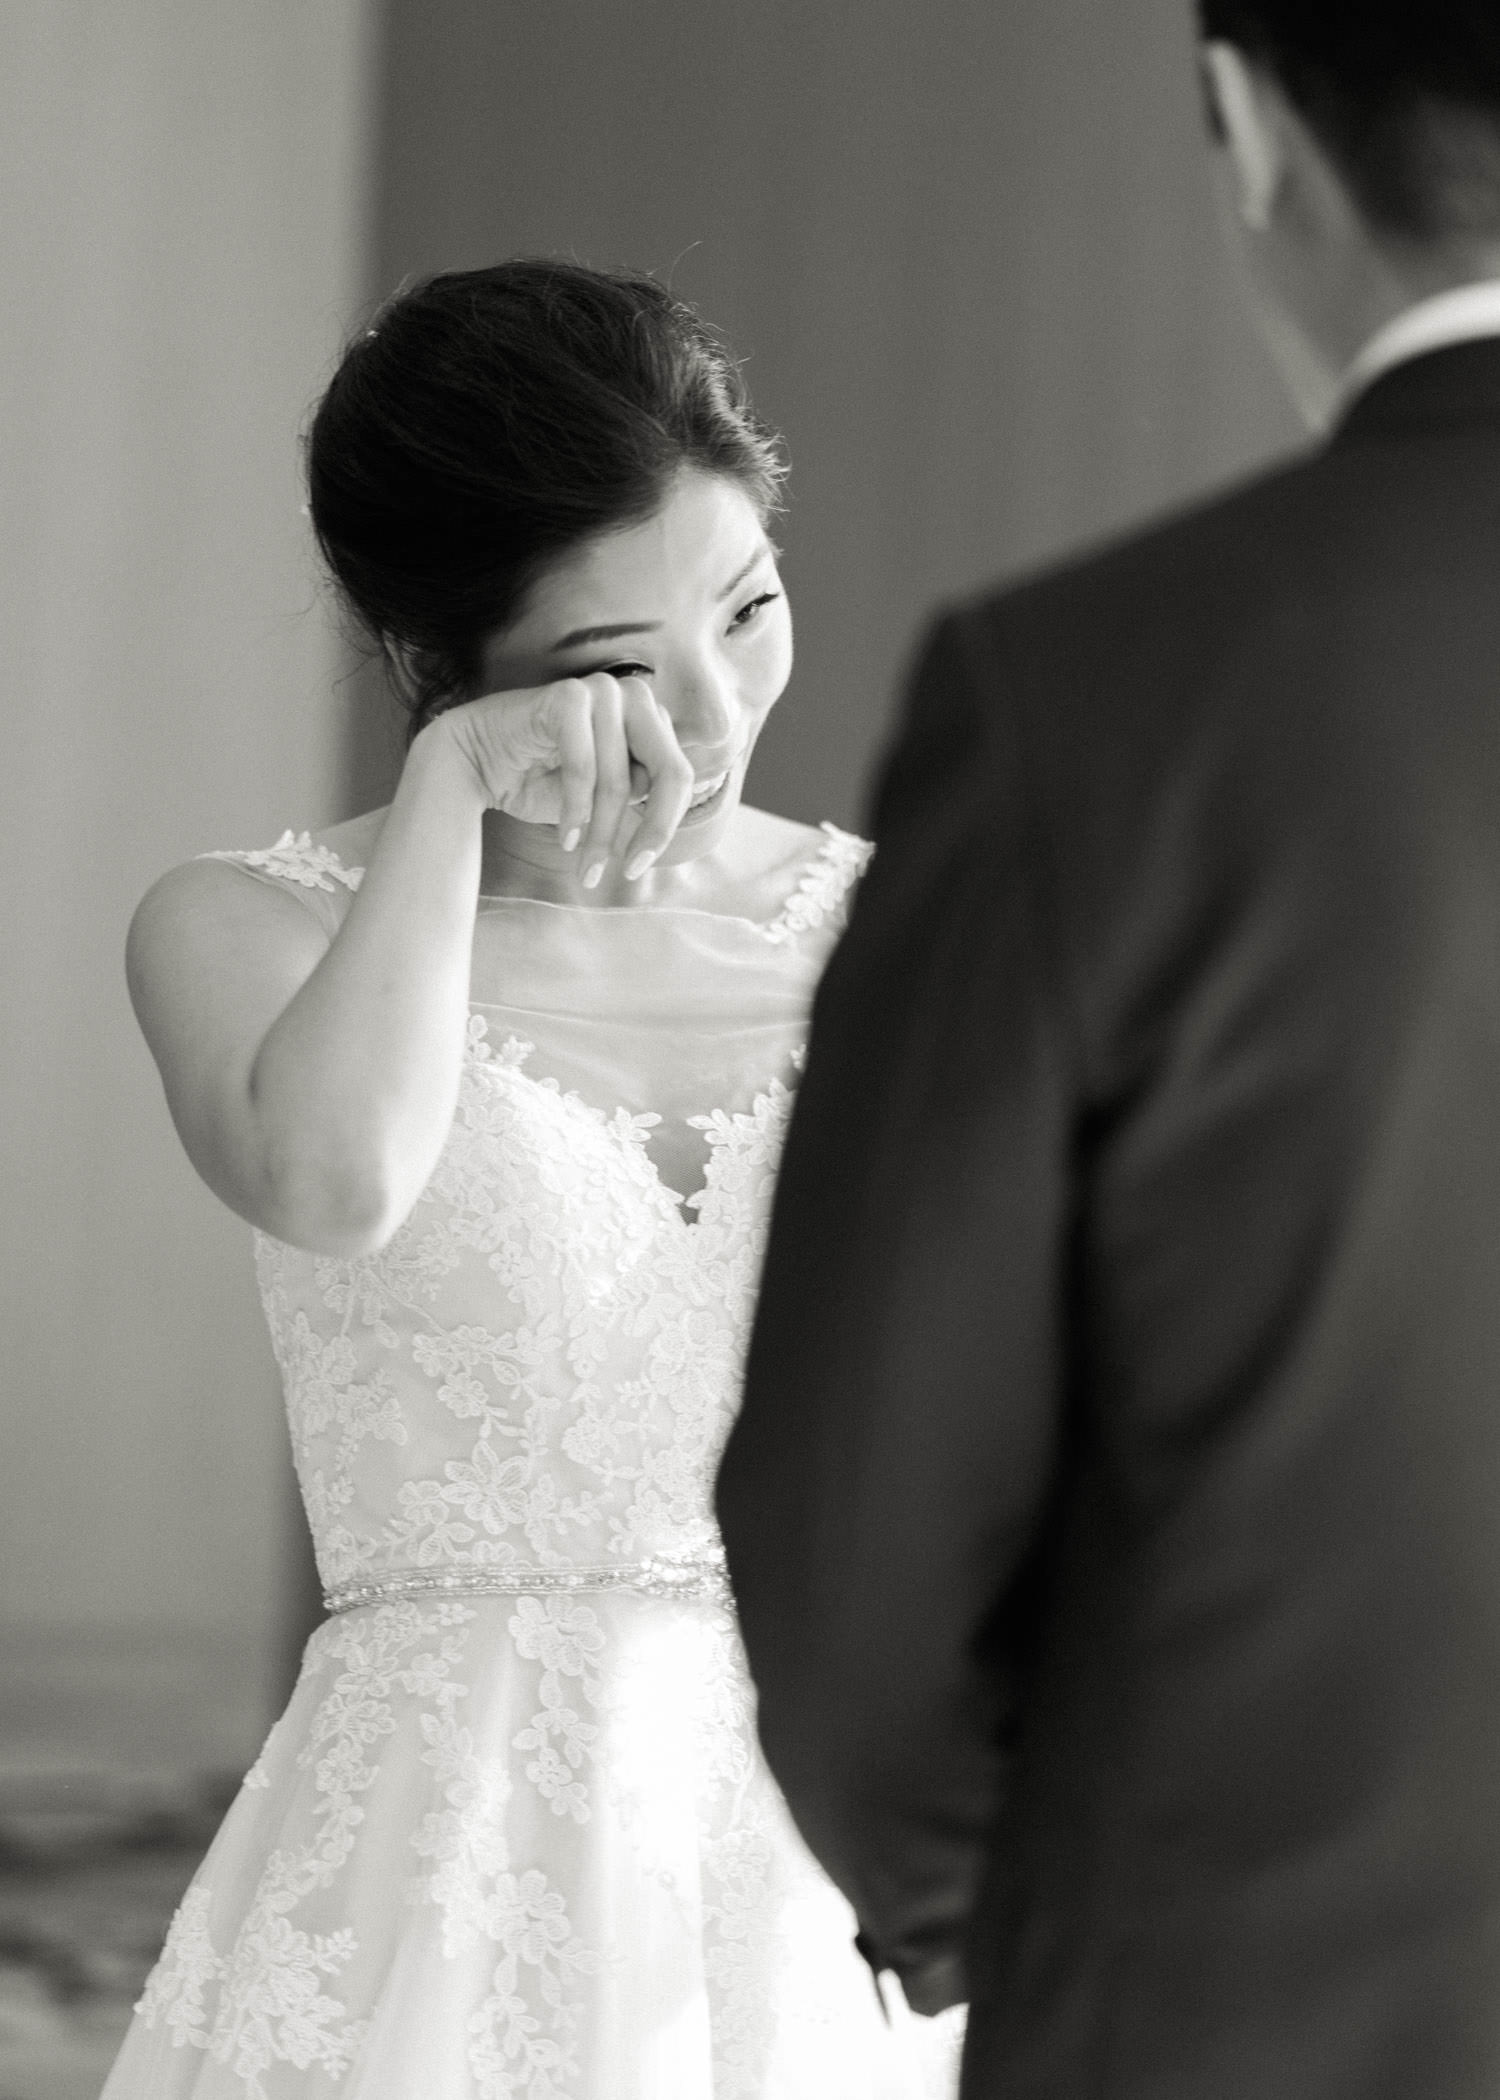 Bride cries during ceremony at Shangri-La hotel in Toronto wedding